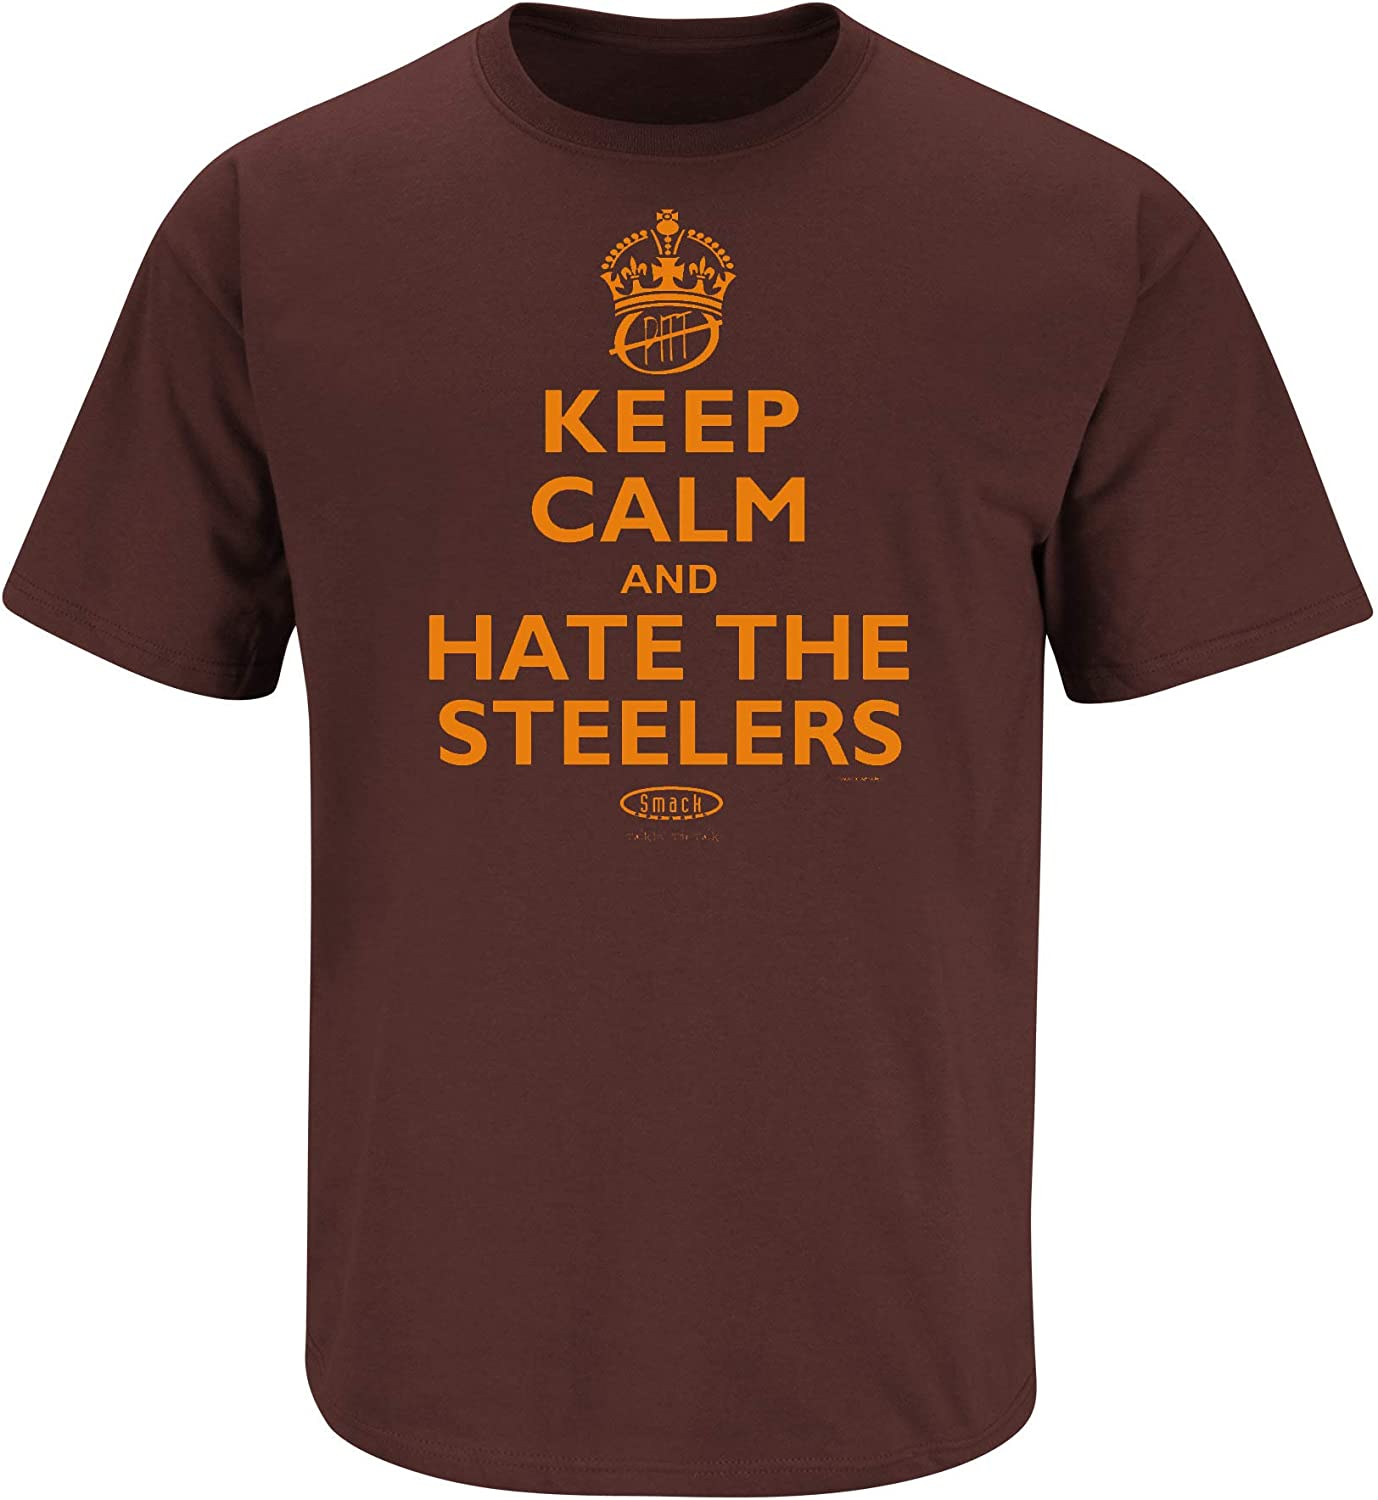 Keep Calm and Hate The Steelers Brown T-Shirt S-5X Smack Apparel Cleveland Football Fans